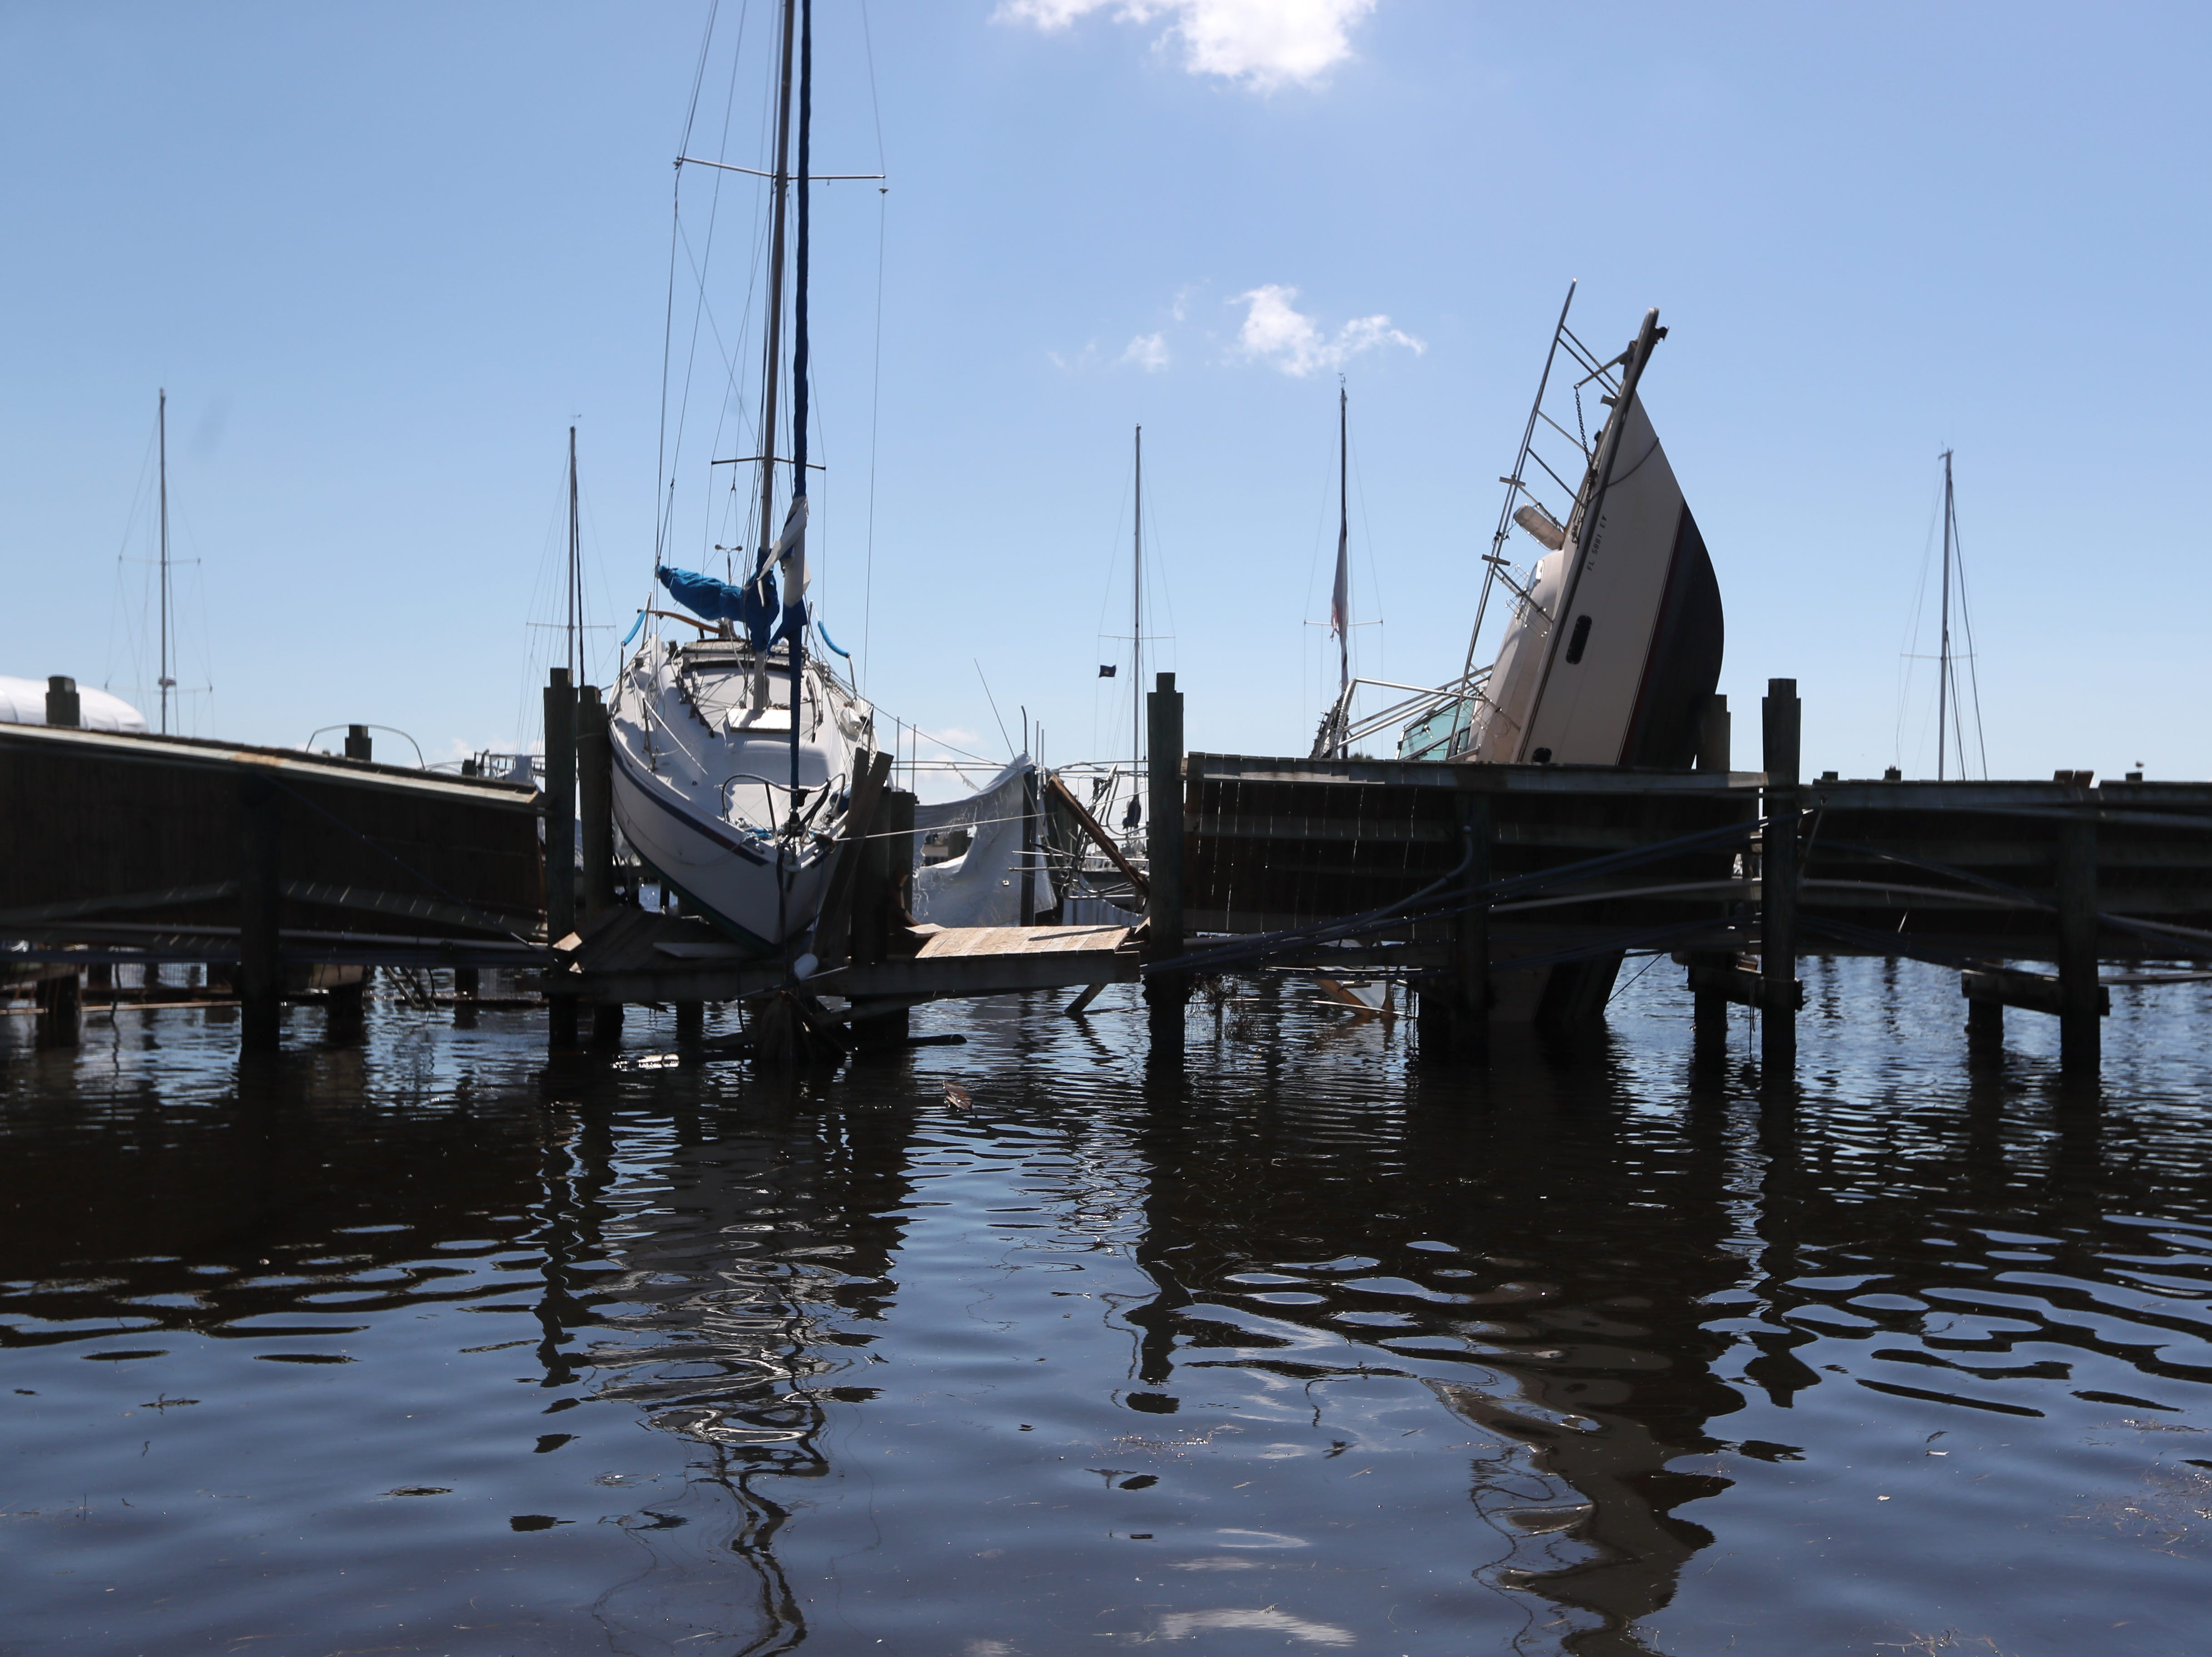 Boats are twisted along the docks Tuesday in the Port St. Joe marina after Hurricane Michael blasted the region.